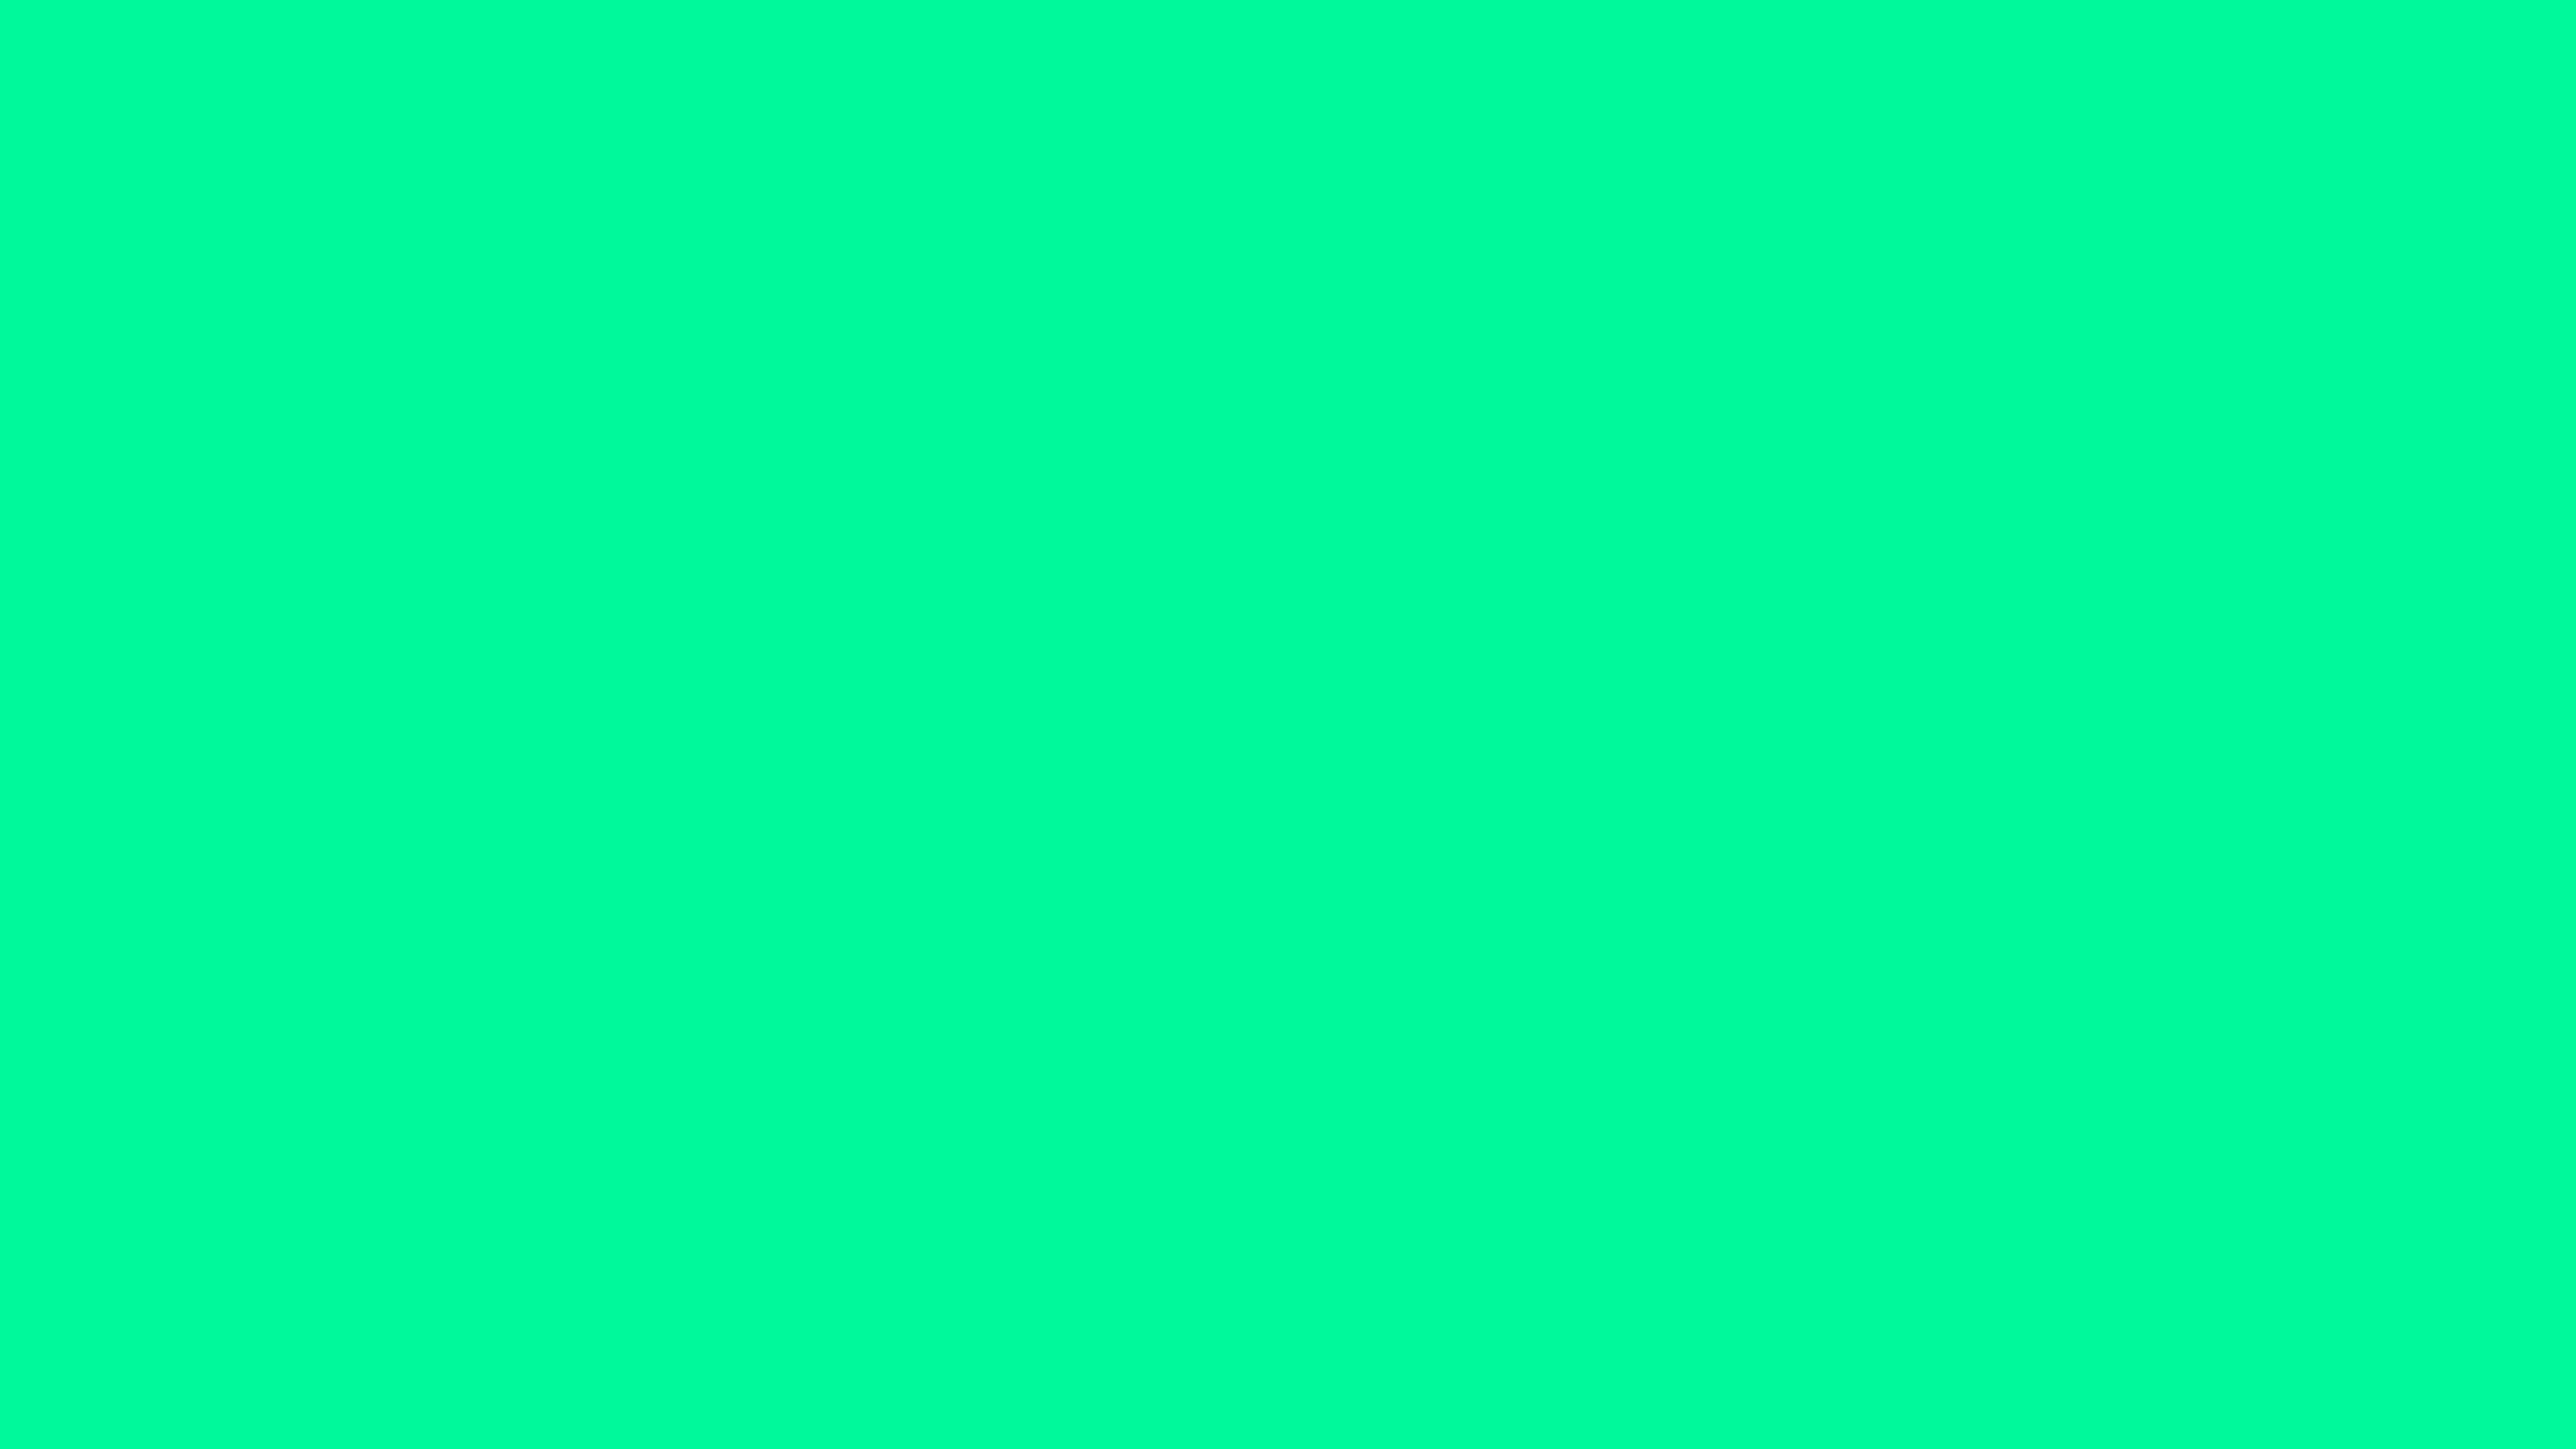 3840x2160 Medium Spring Green Solid Color Background